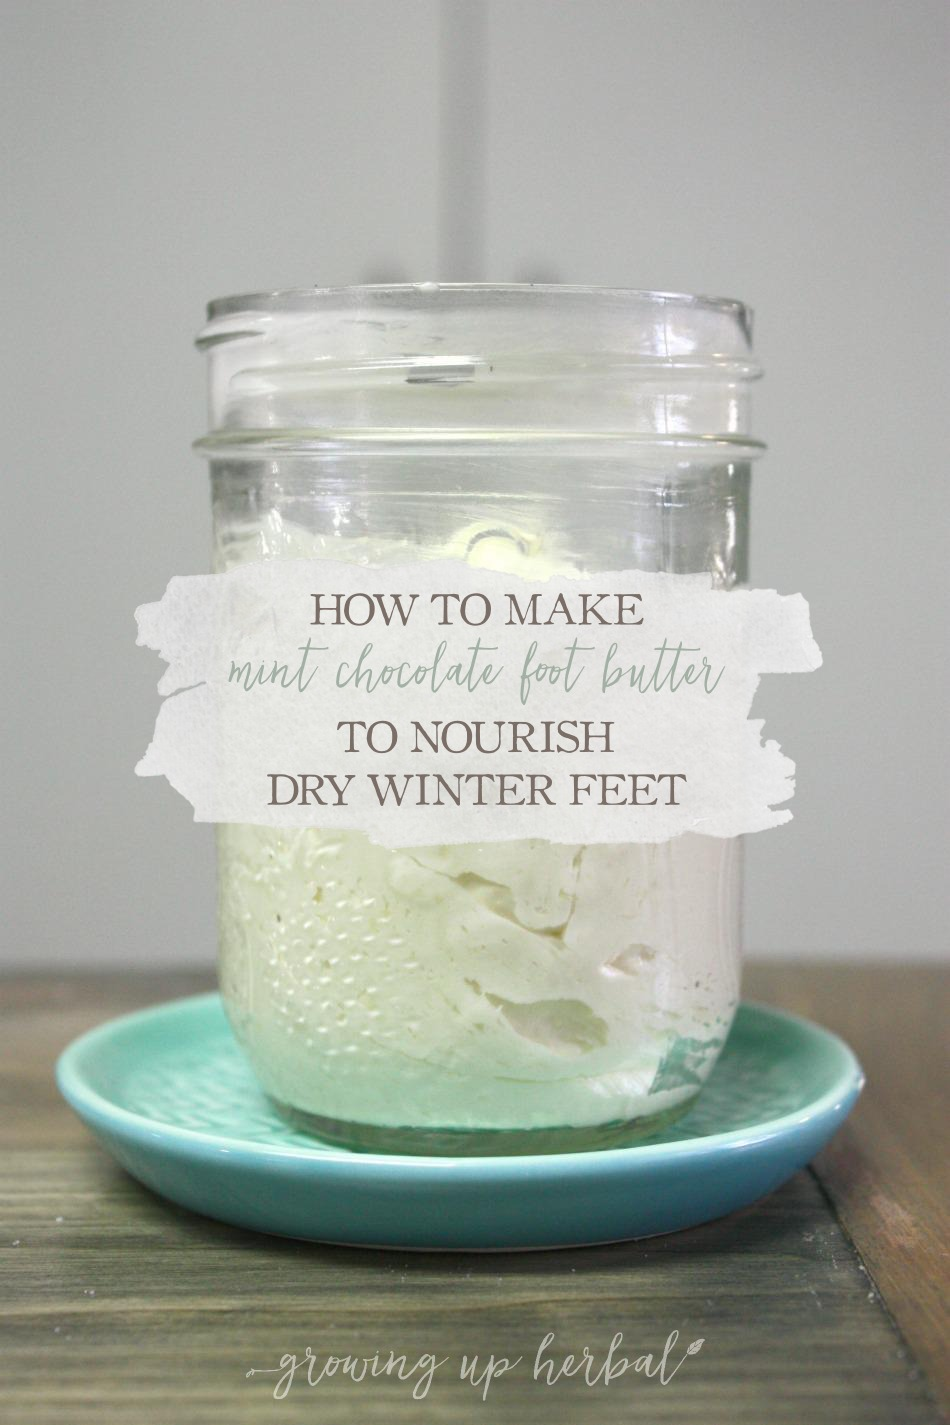 How To Make A Mint Chocolate Foot Butter To Nourish Dry Winter Feet | Growing Up Herbal | Fall in love with this mint chocolate foot butter. Your feet sure will!